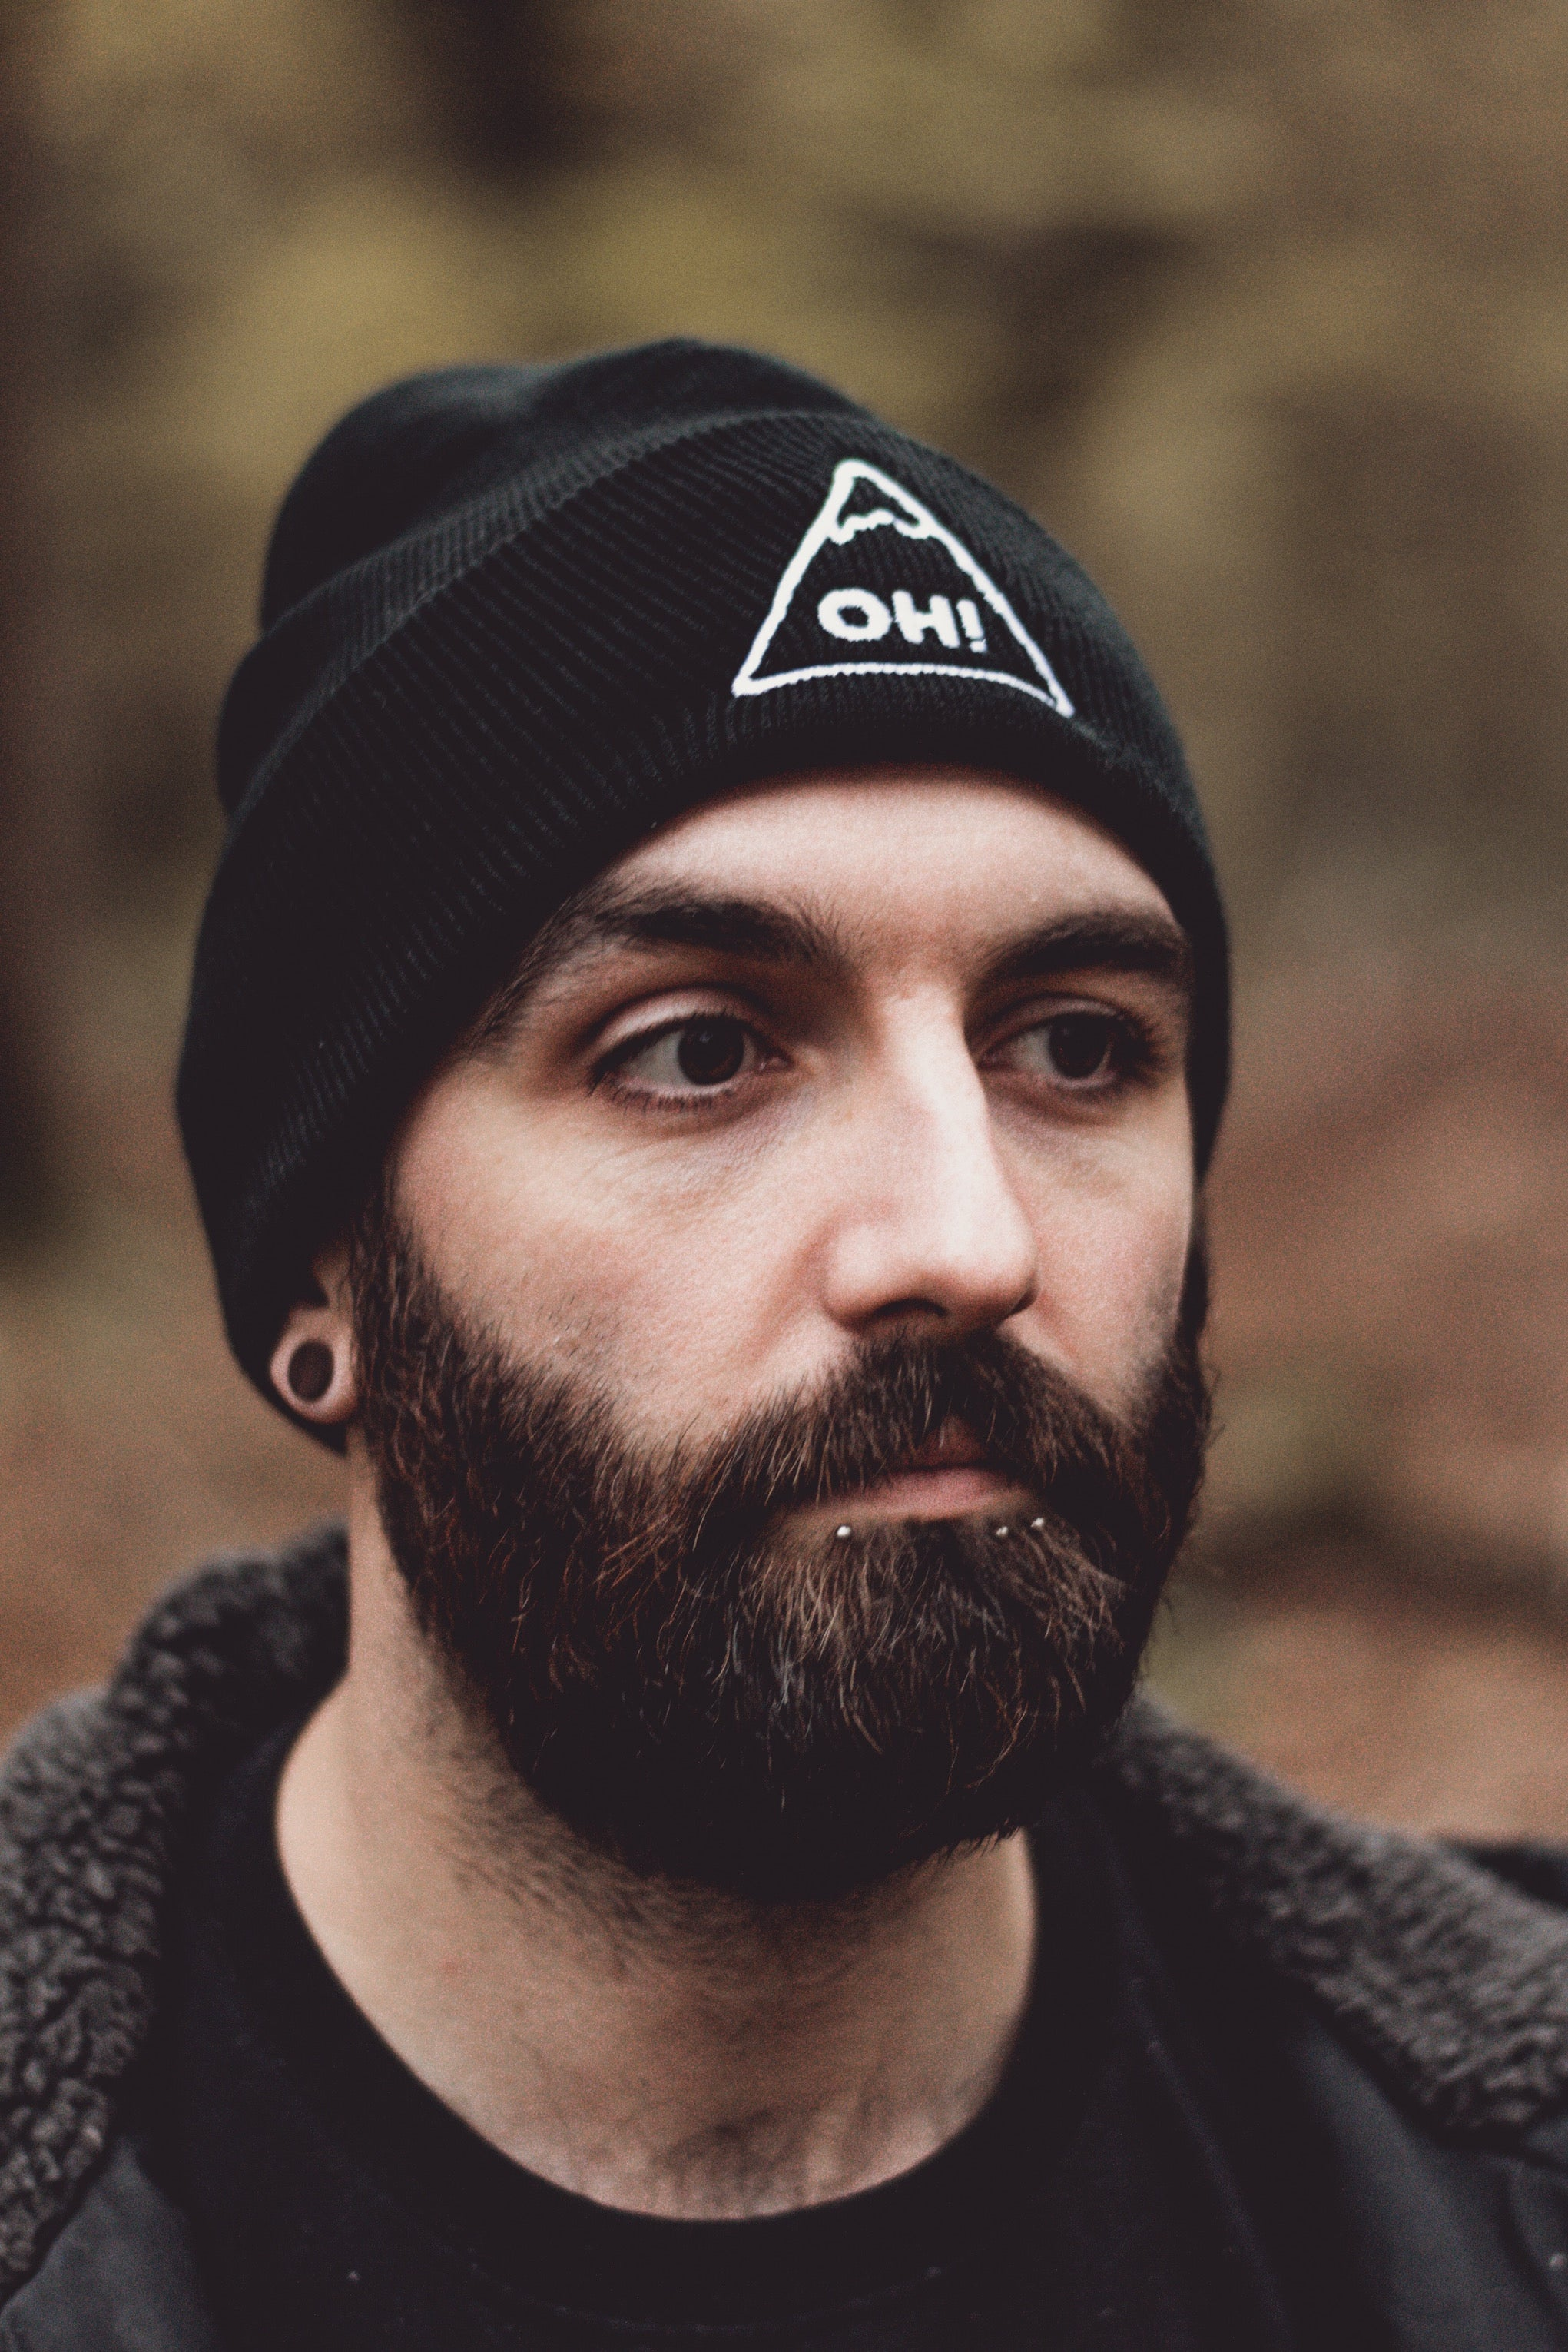 Bearded Model wearing back Beanie with white embroidered triangle and OH! lettering in the centre